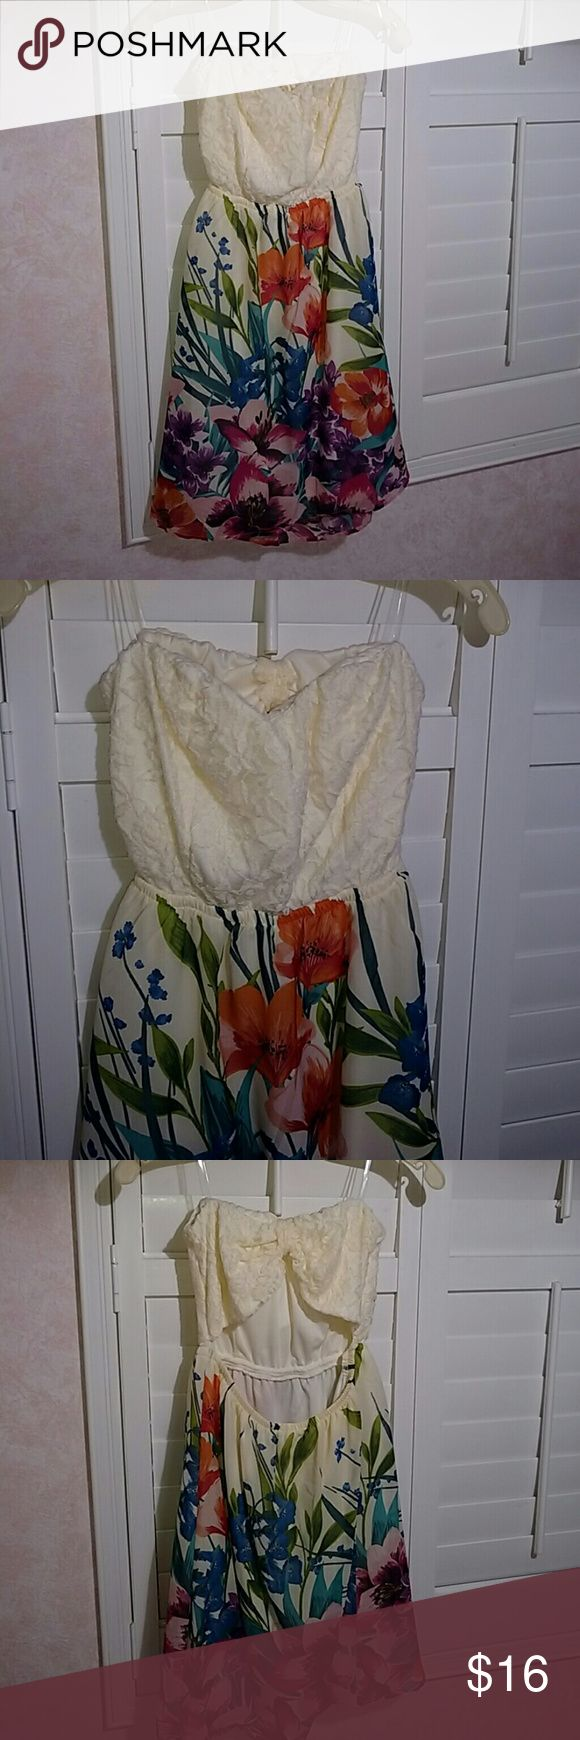 Very pretty and cute strapless dress! This is one of the cutest dresses. Not only is it strapless but it also is backless. It has a cute bow look in the back which makes it pop just a little more. This dress was only worn once so it is like new! Dresses Strapless